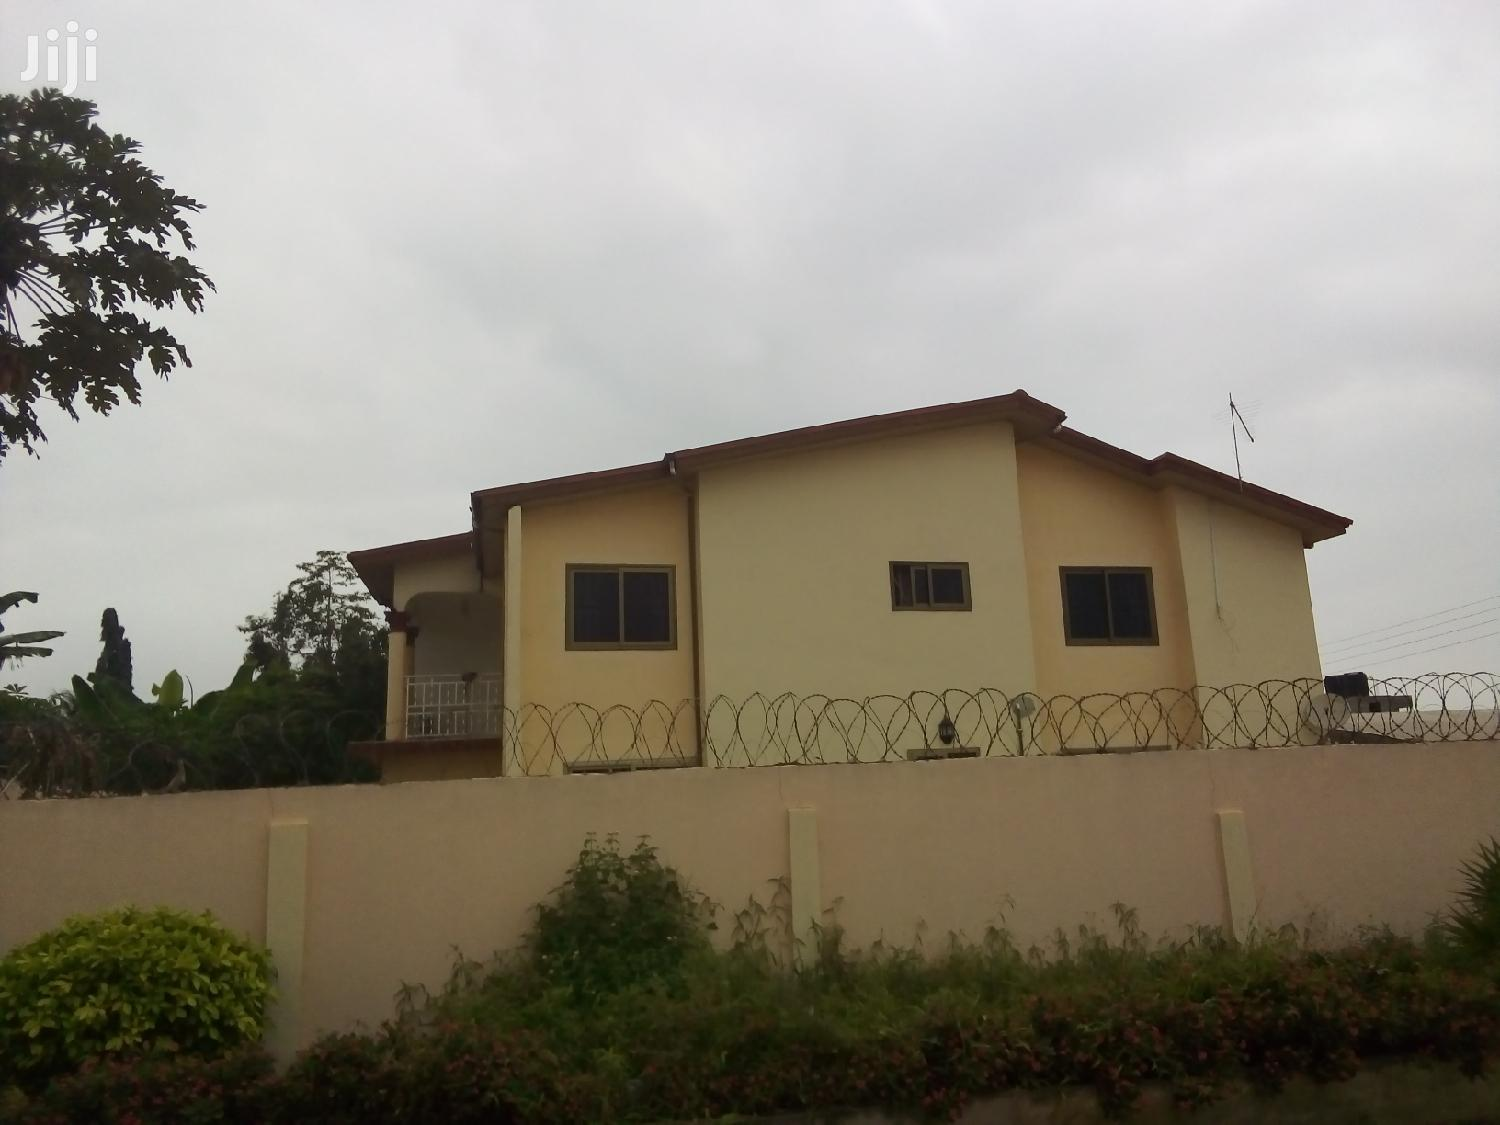 2 Bedrooms Apartment At Abgobga Opposite Shell Fuel Station   Houses & Apartments For Rent for sale in Ga East Municipal, Greater Accra, Ghana